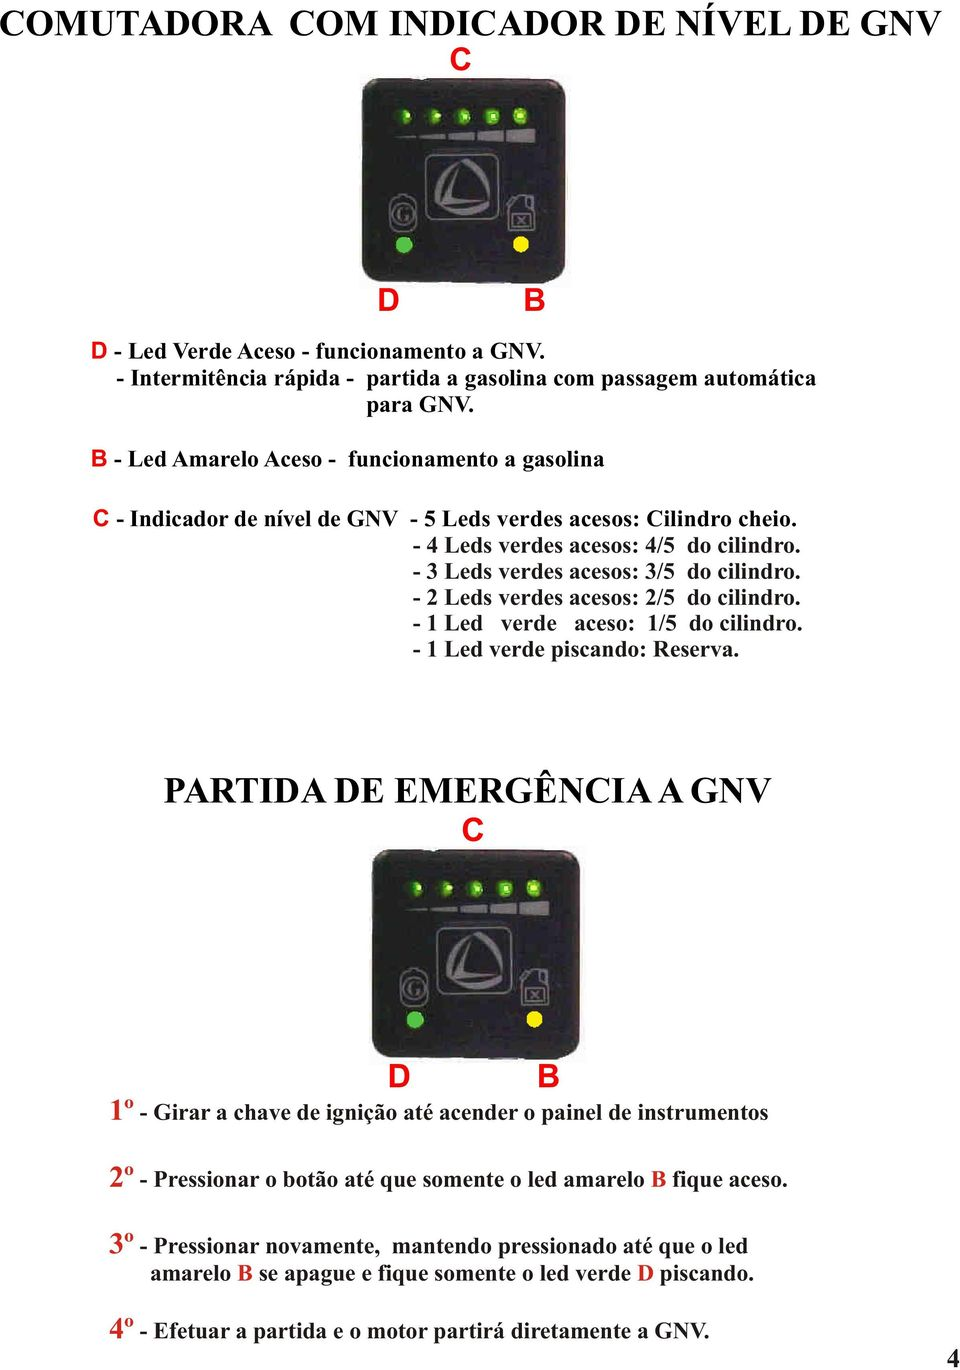 - 2 Leds verdes acesos: 2/5 do cilindro. - 1 Led verde aceso: 1/5 do cilindro. - 1 Led verde piscando: Reserva.